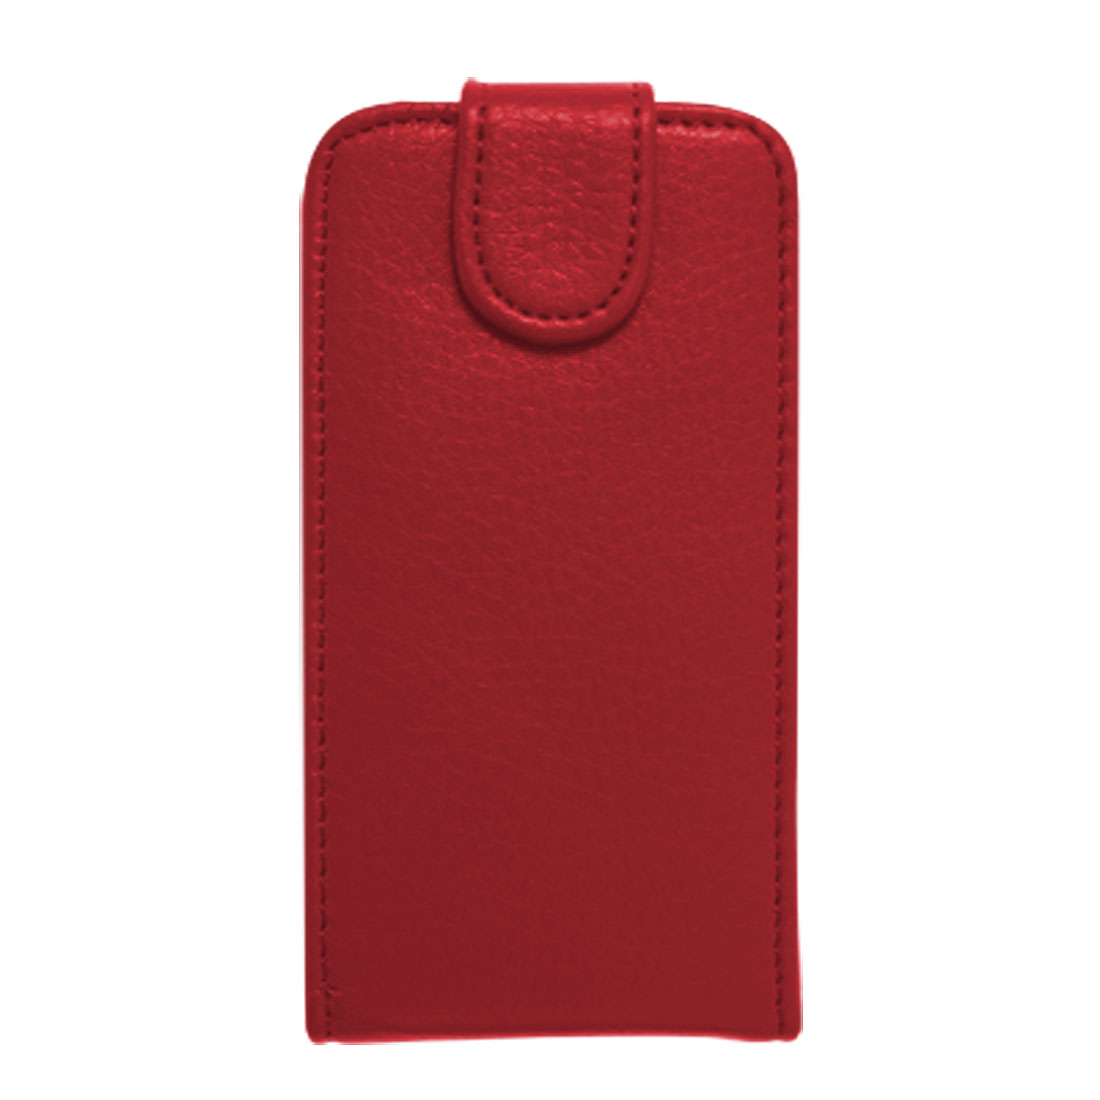 Red Faux Leather Hard Plastic Case + Screen Film for iPhone 4 4G